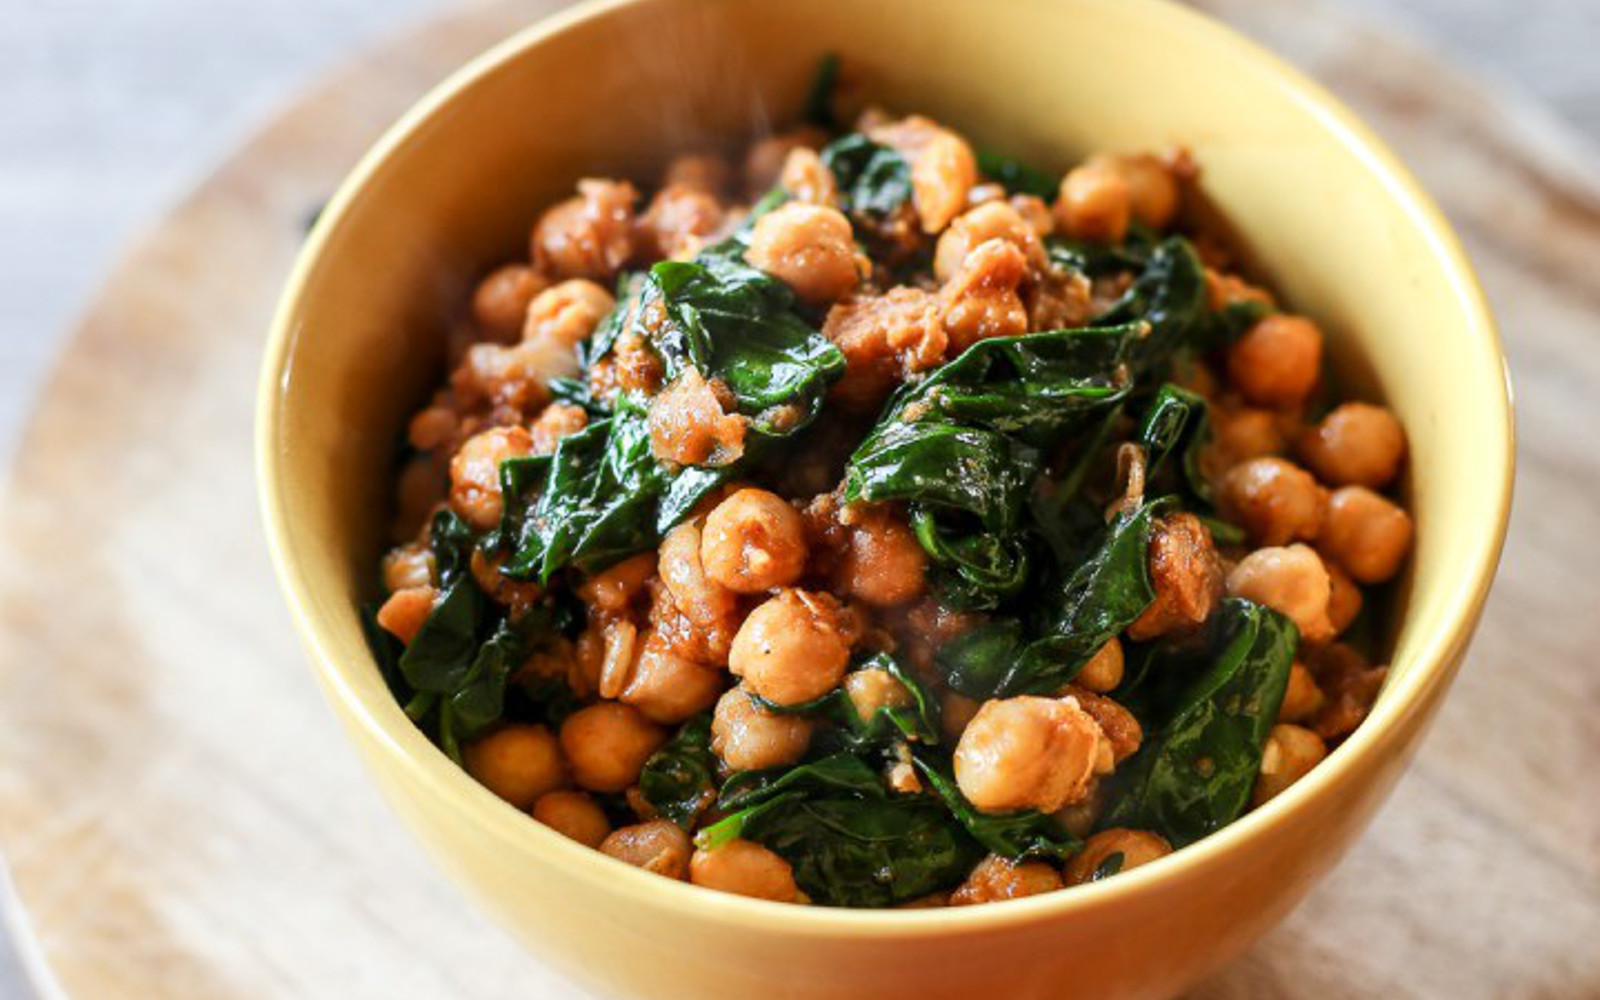 Vegan Espinacas con Garbanzos: Spinach with Chickpeas GLuten-Free